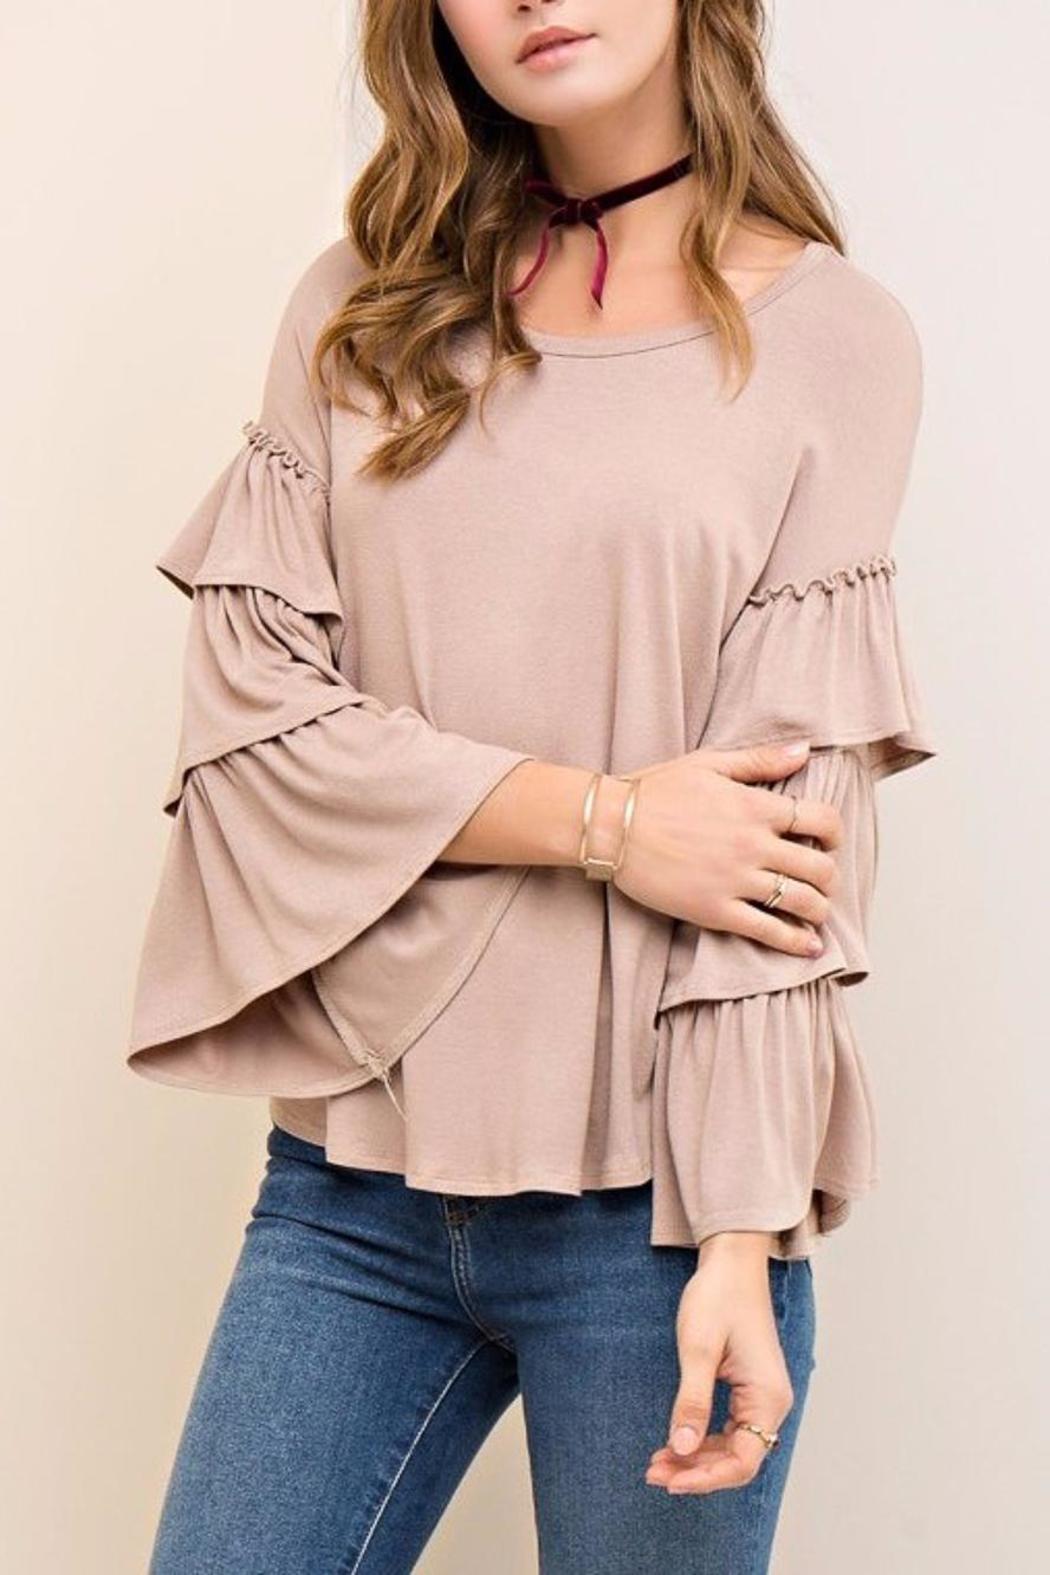 People Outfitter Mystic Ruffle Sleeves - Main Image